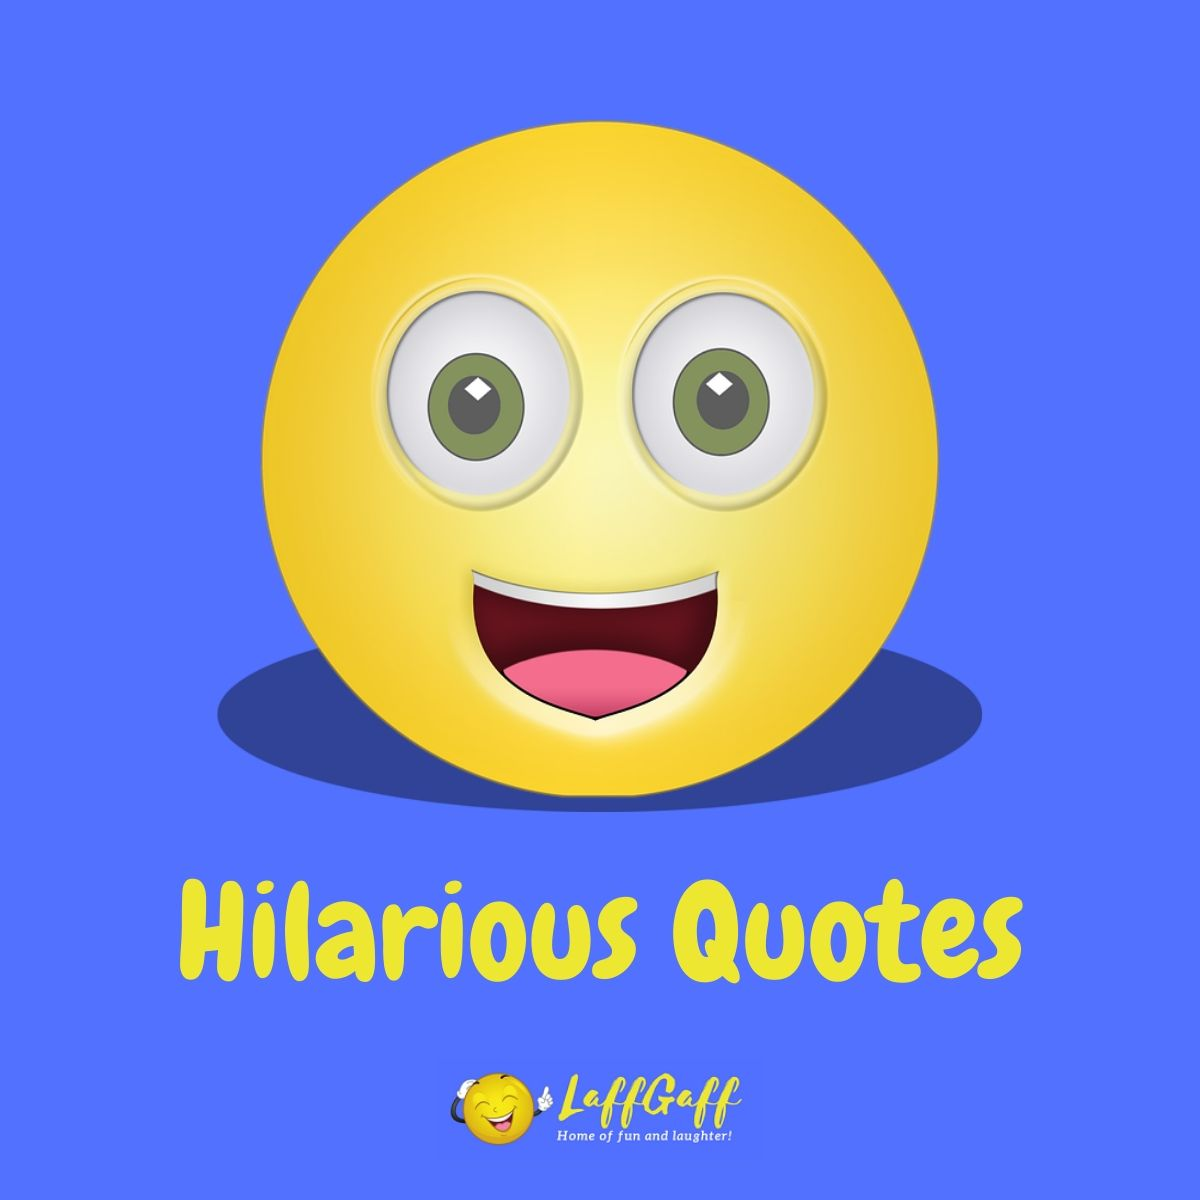 Featured image for a page of hilarious quotes and sayings.